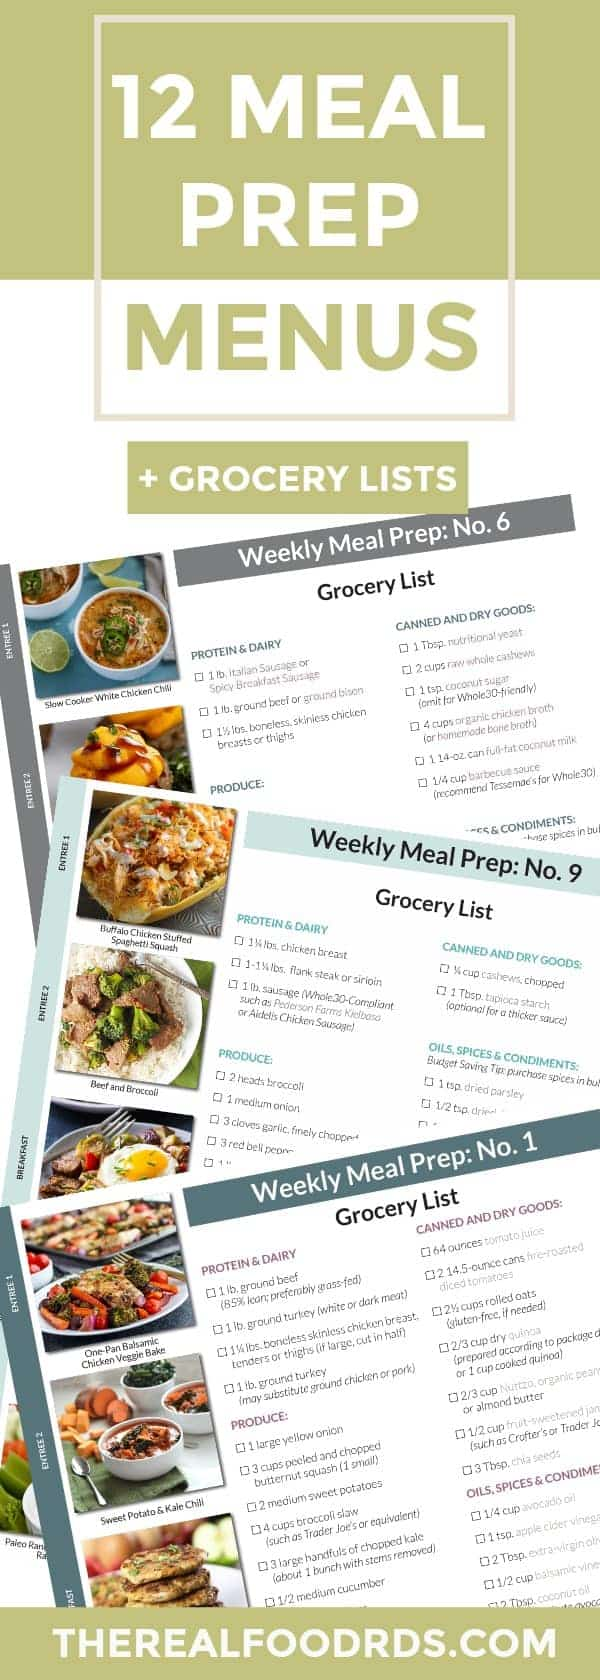 pinterest image for 12 meal prep menus and grocery lists